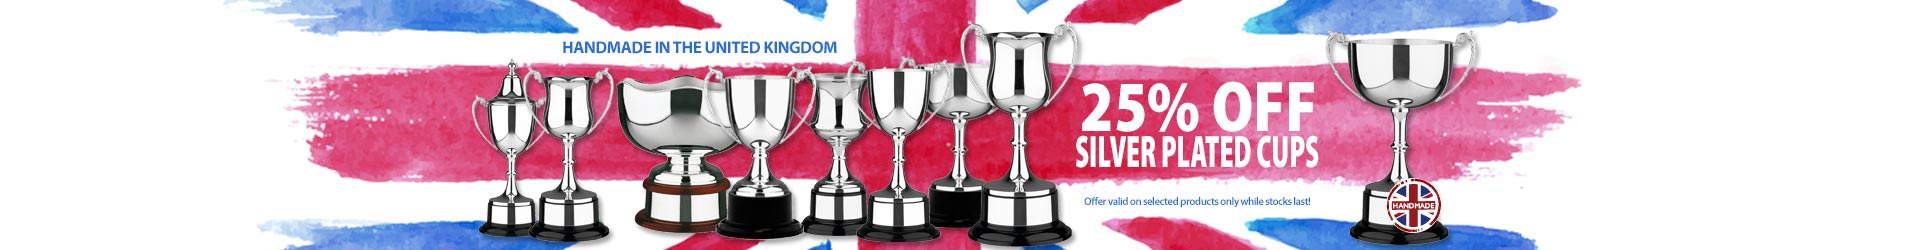 Silverplated Cups with 25% Off